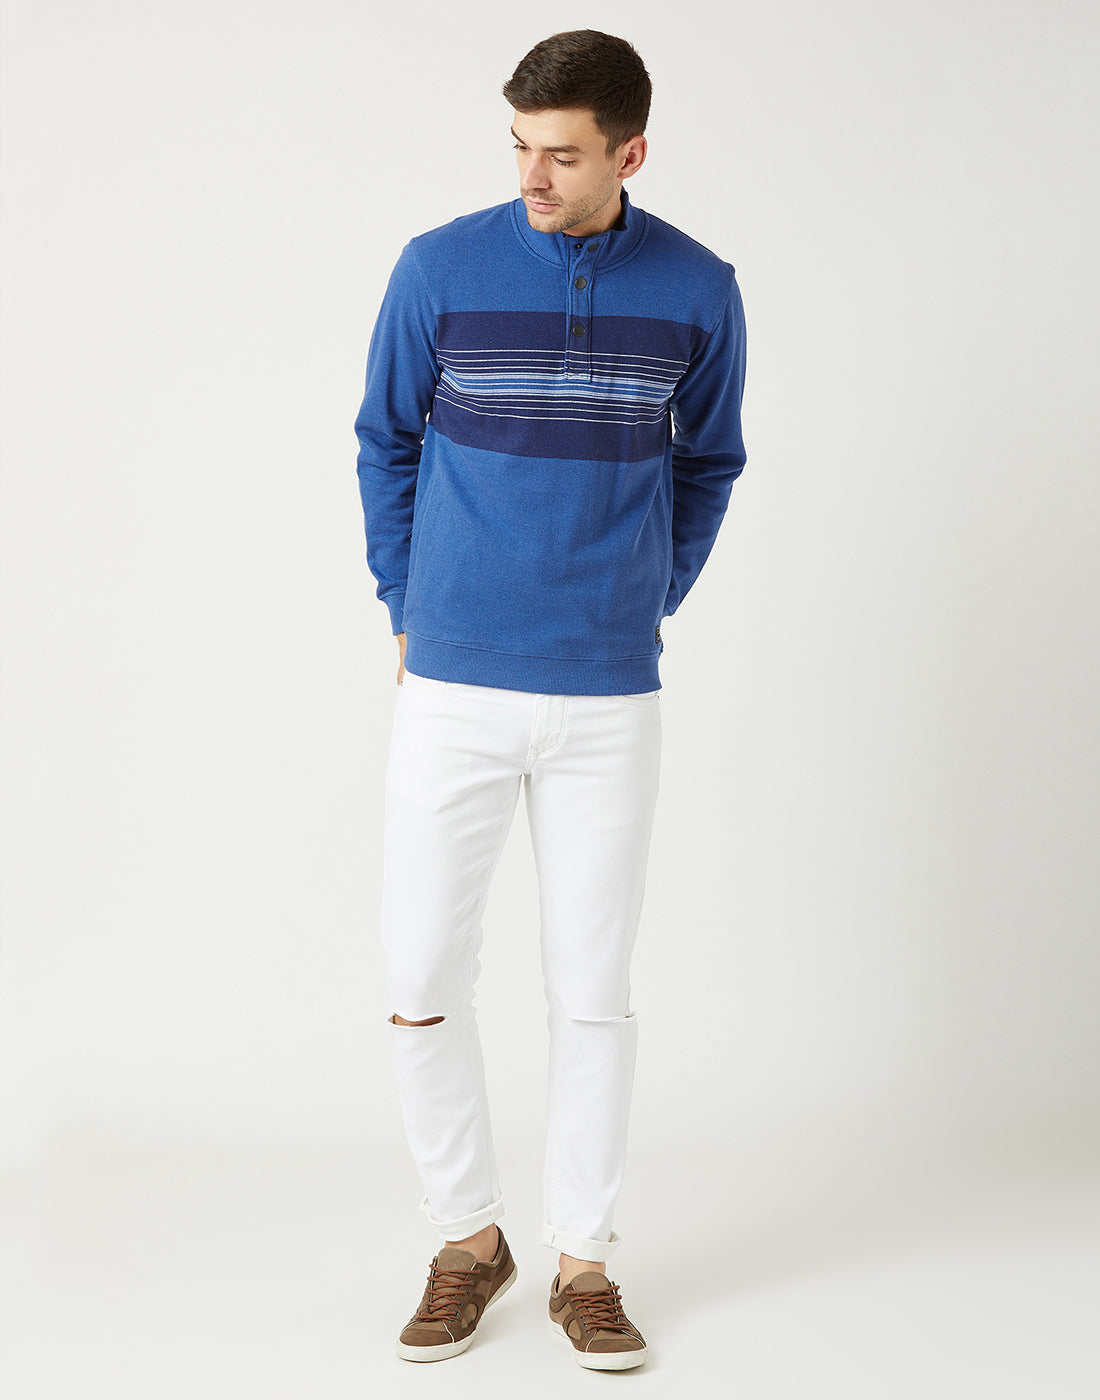 Octave Men Royal Blue Melange Printed Sweatshirt